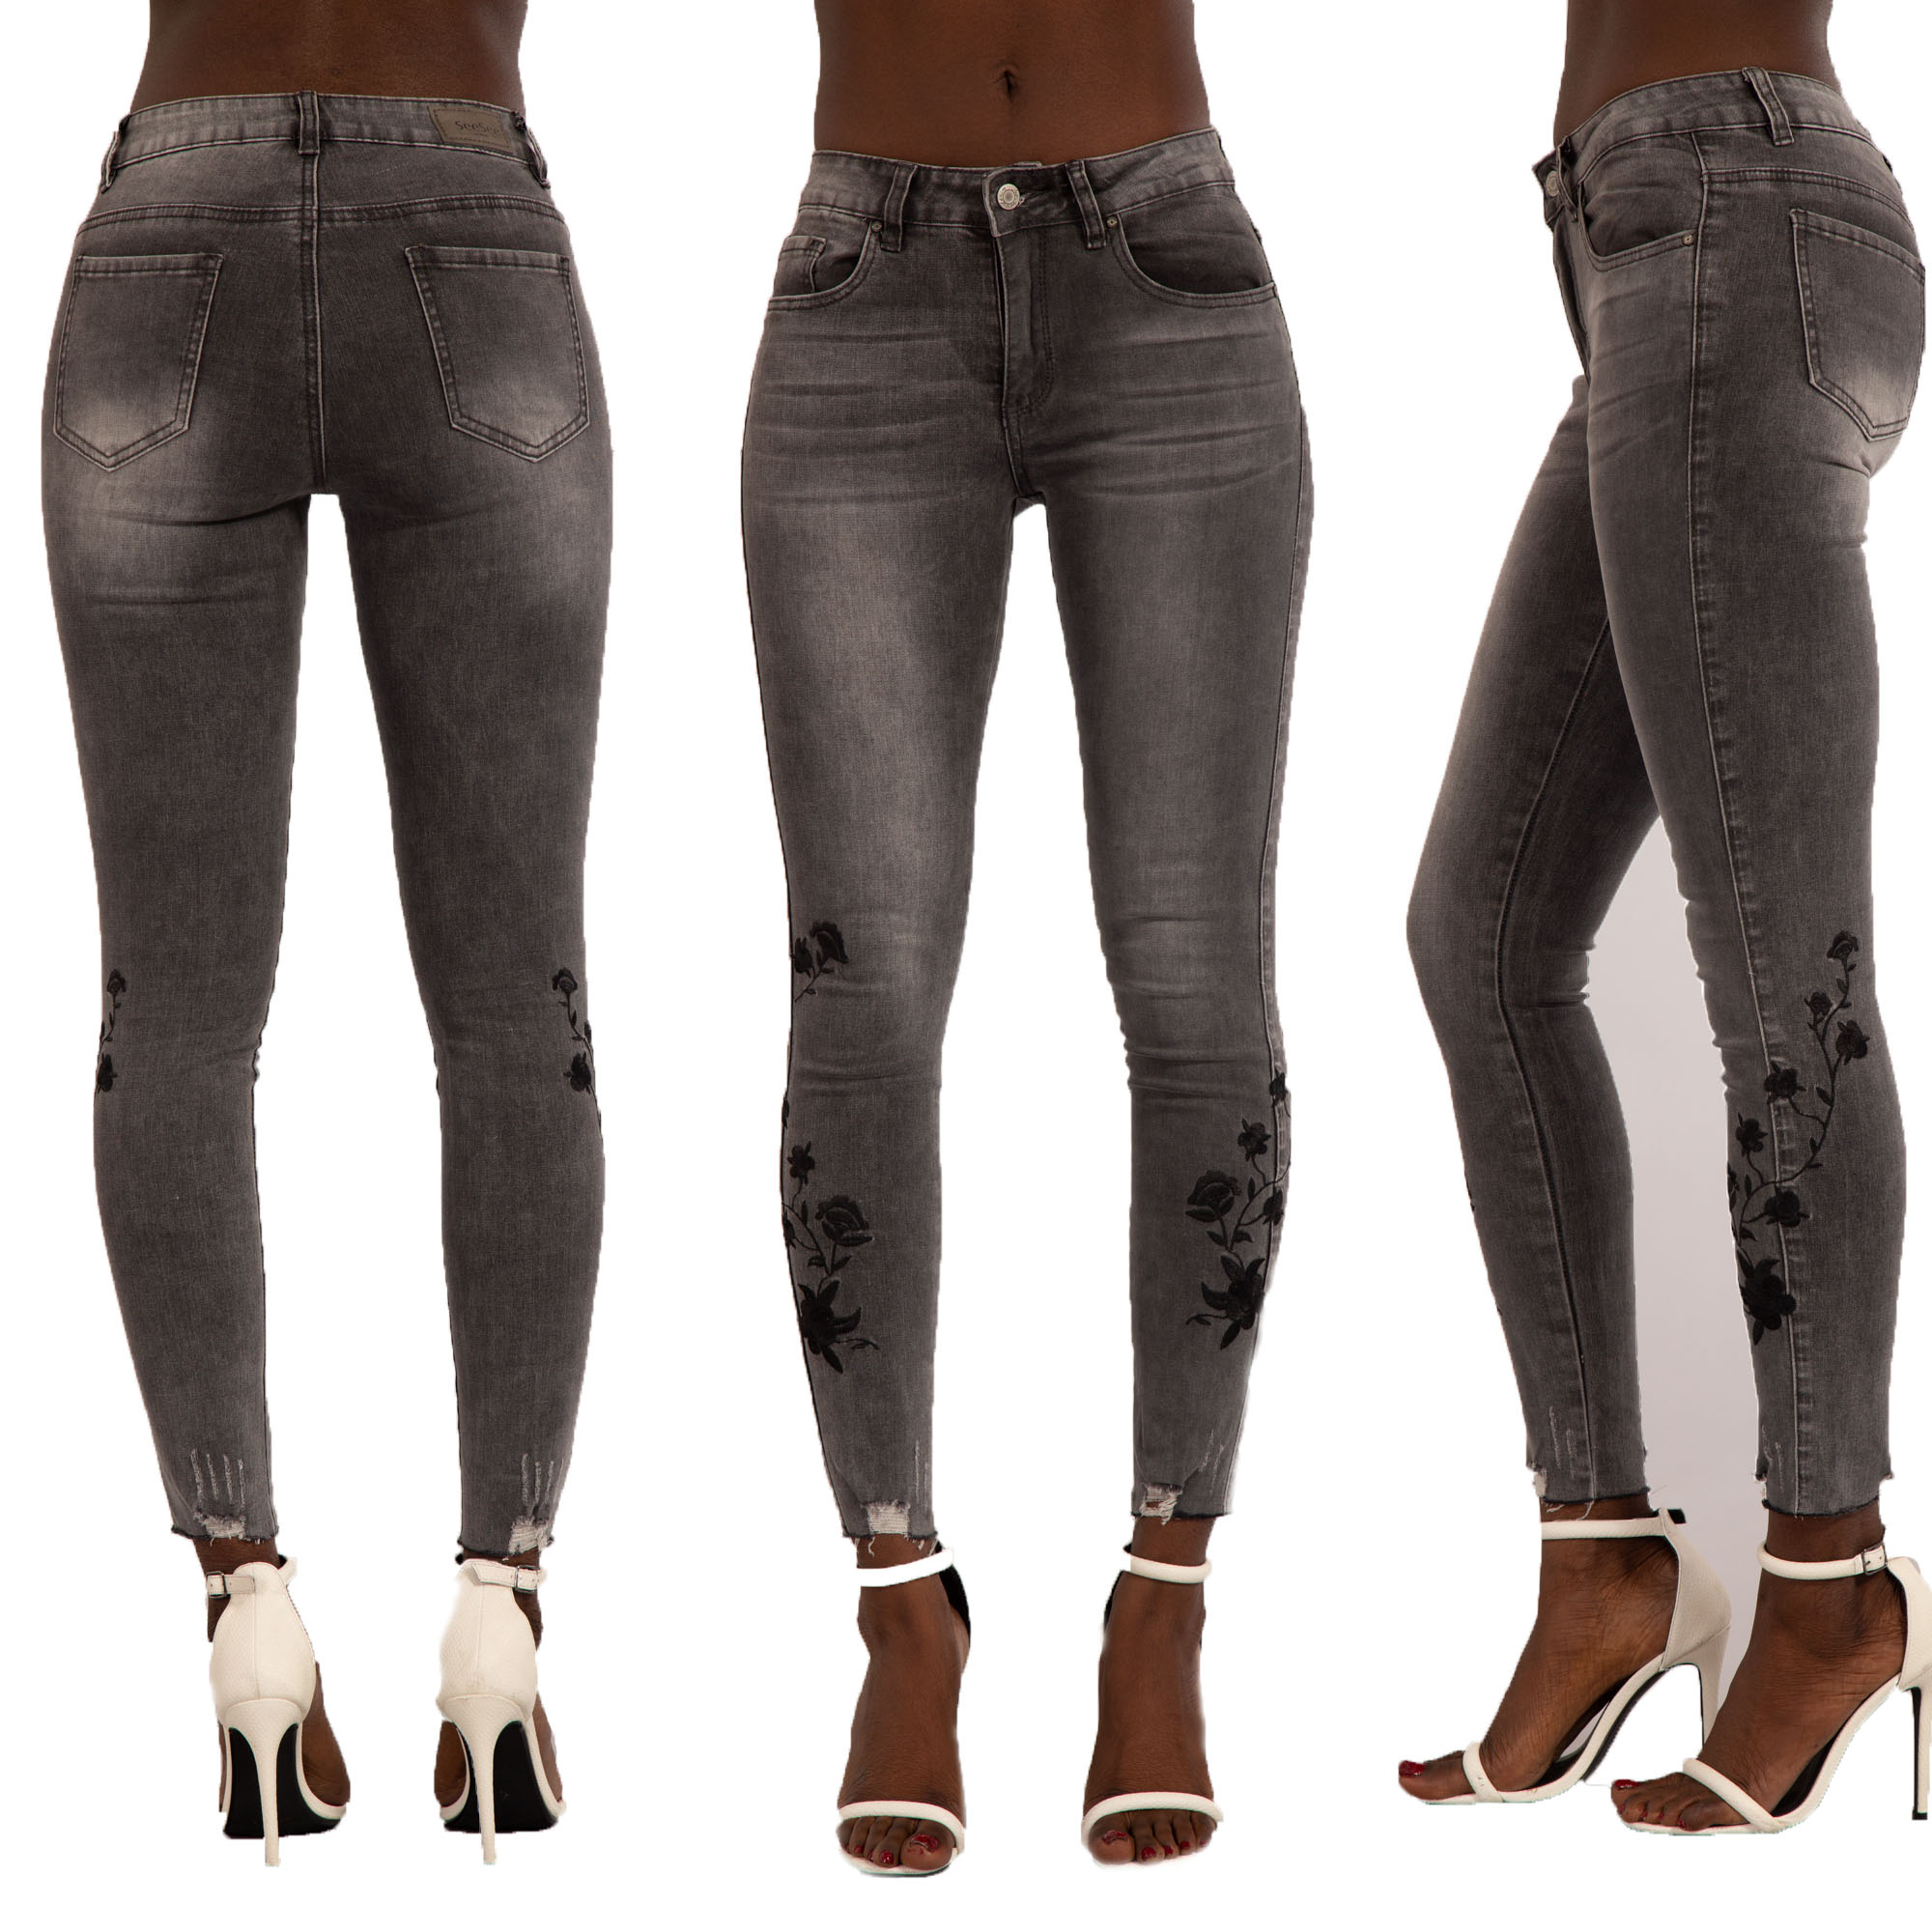 UK Womens Skinny Solid Stretch Shorts Ladies Summer Trousers Hot Pants Size 6-24